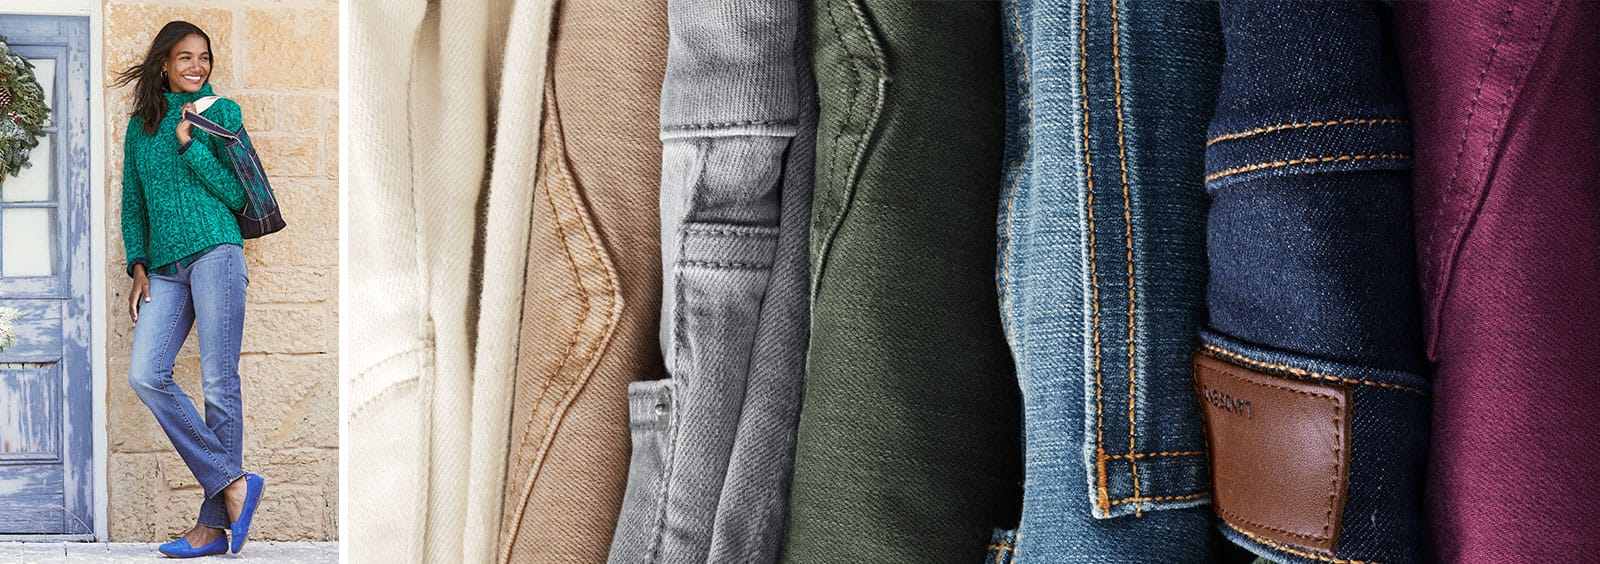 How to Buy Jeans That Fit Well